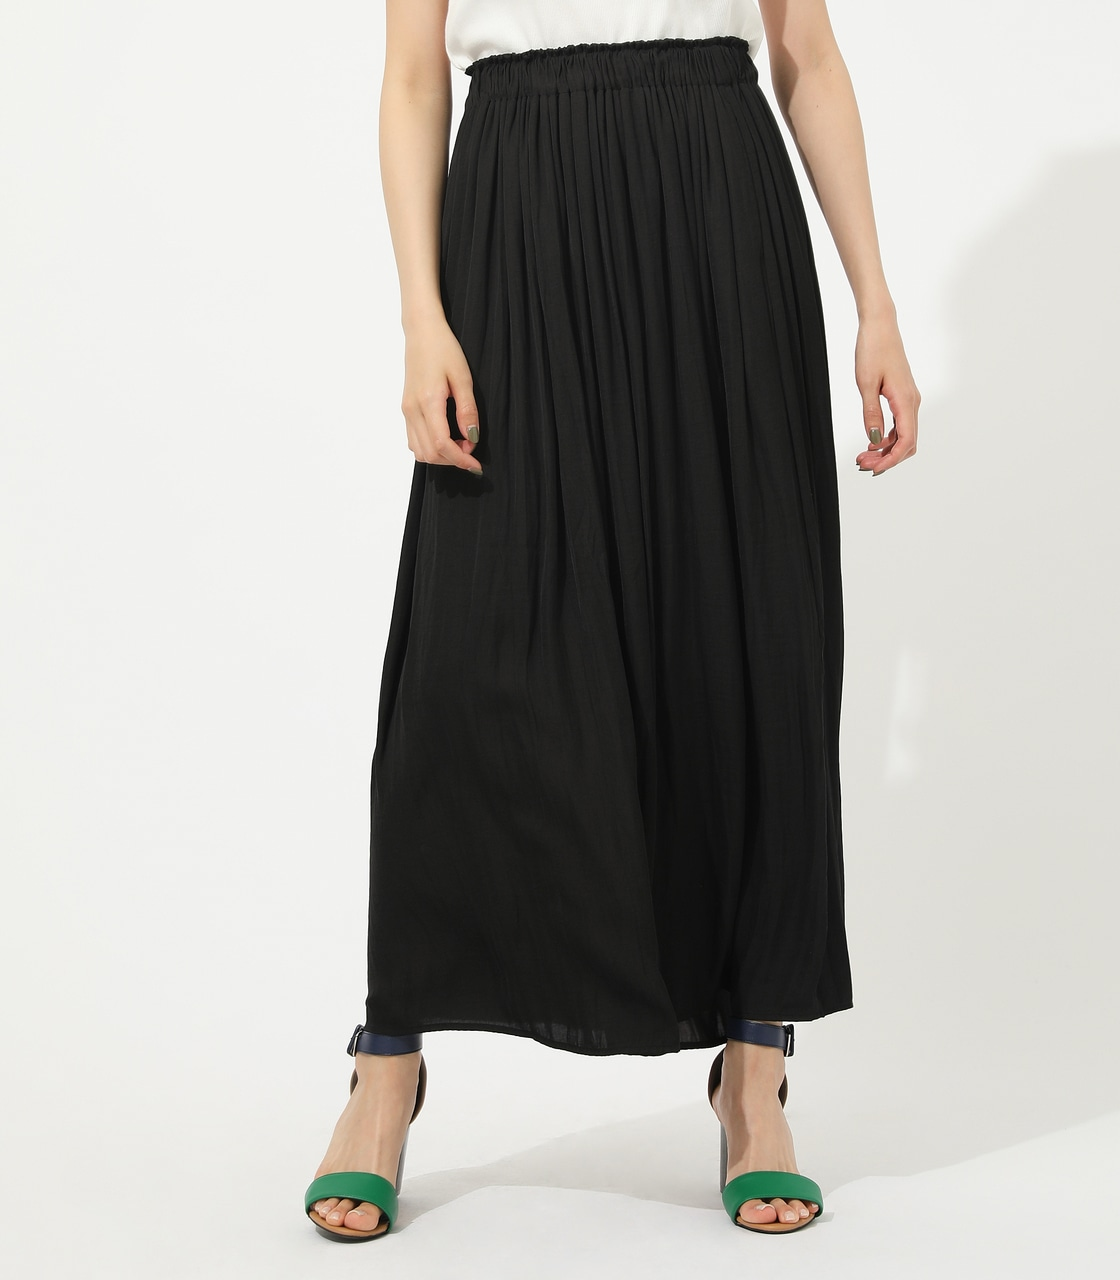 【AZUL BY MOUSSY】GATHER FLARE SKIRT 詳細画像 BLK 1